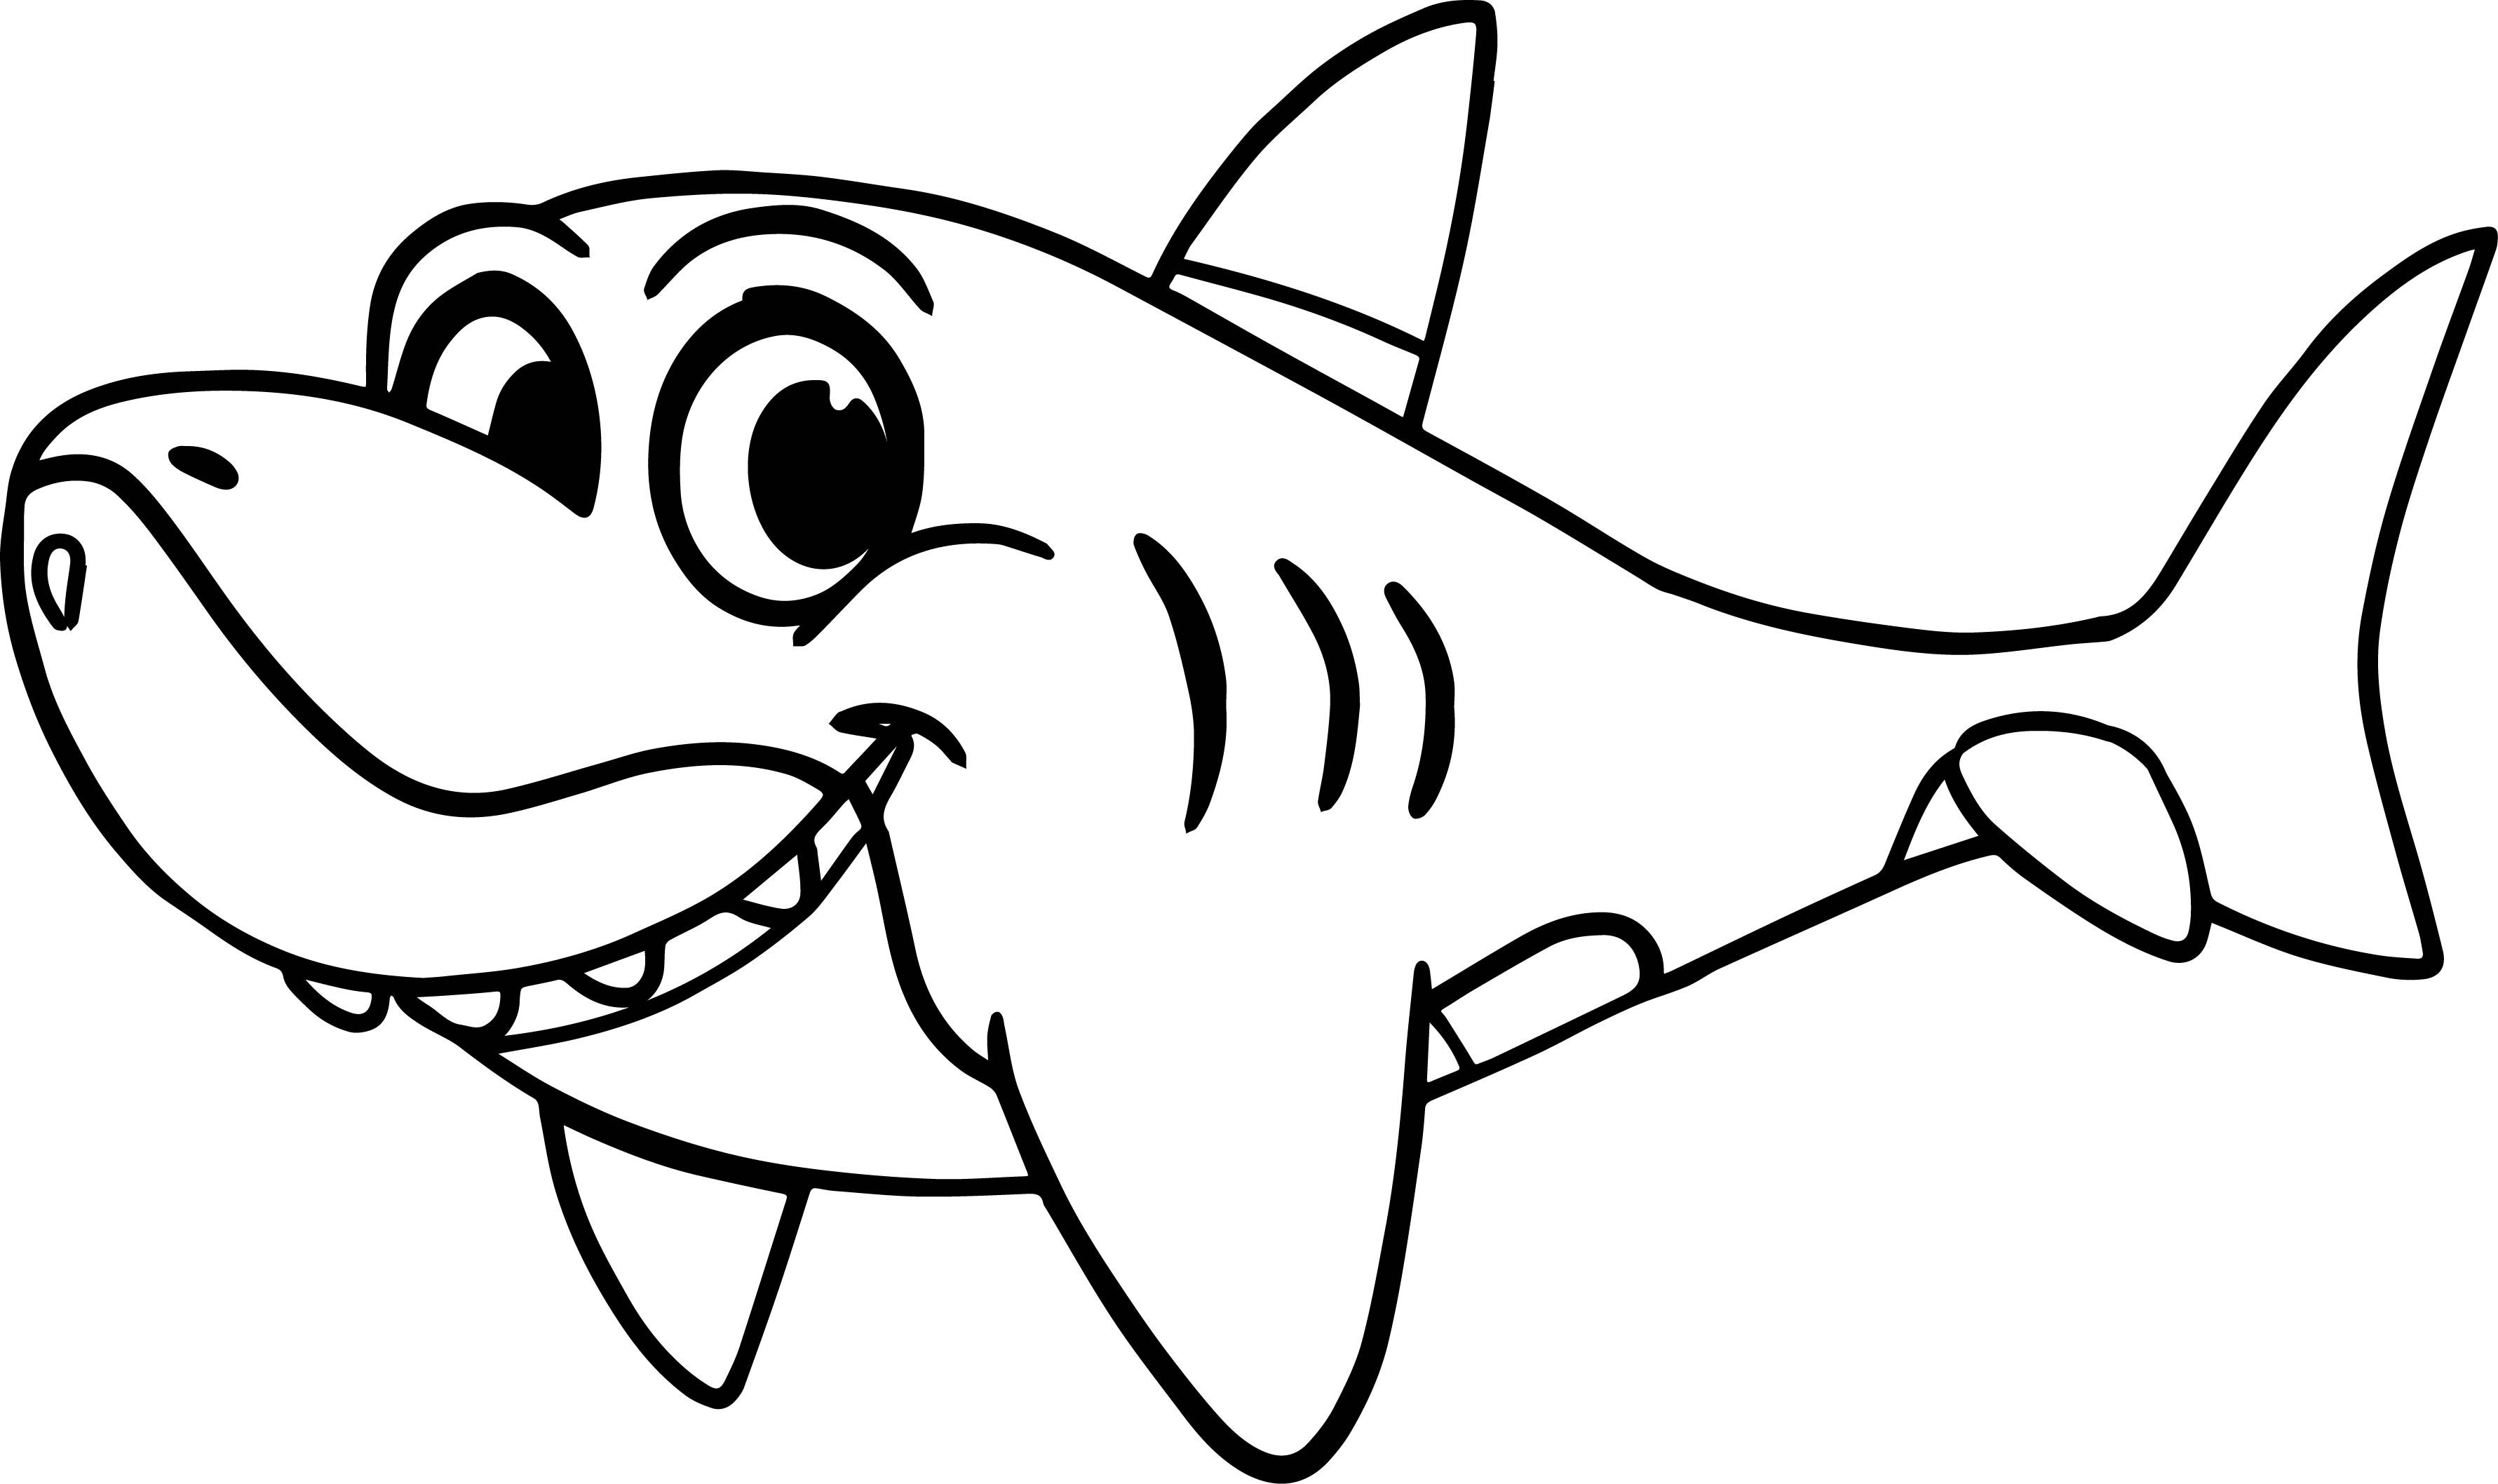 awesome Morphle Cartoon My Cute Shark Coloring Page | Shark coloring pages,  Cartoon coloring pages, Cute coloring pages